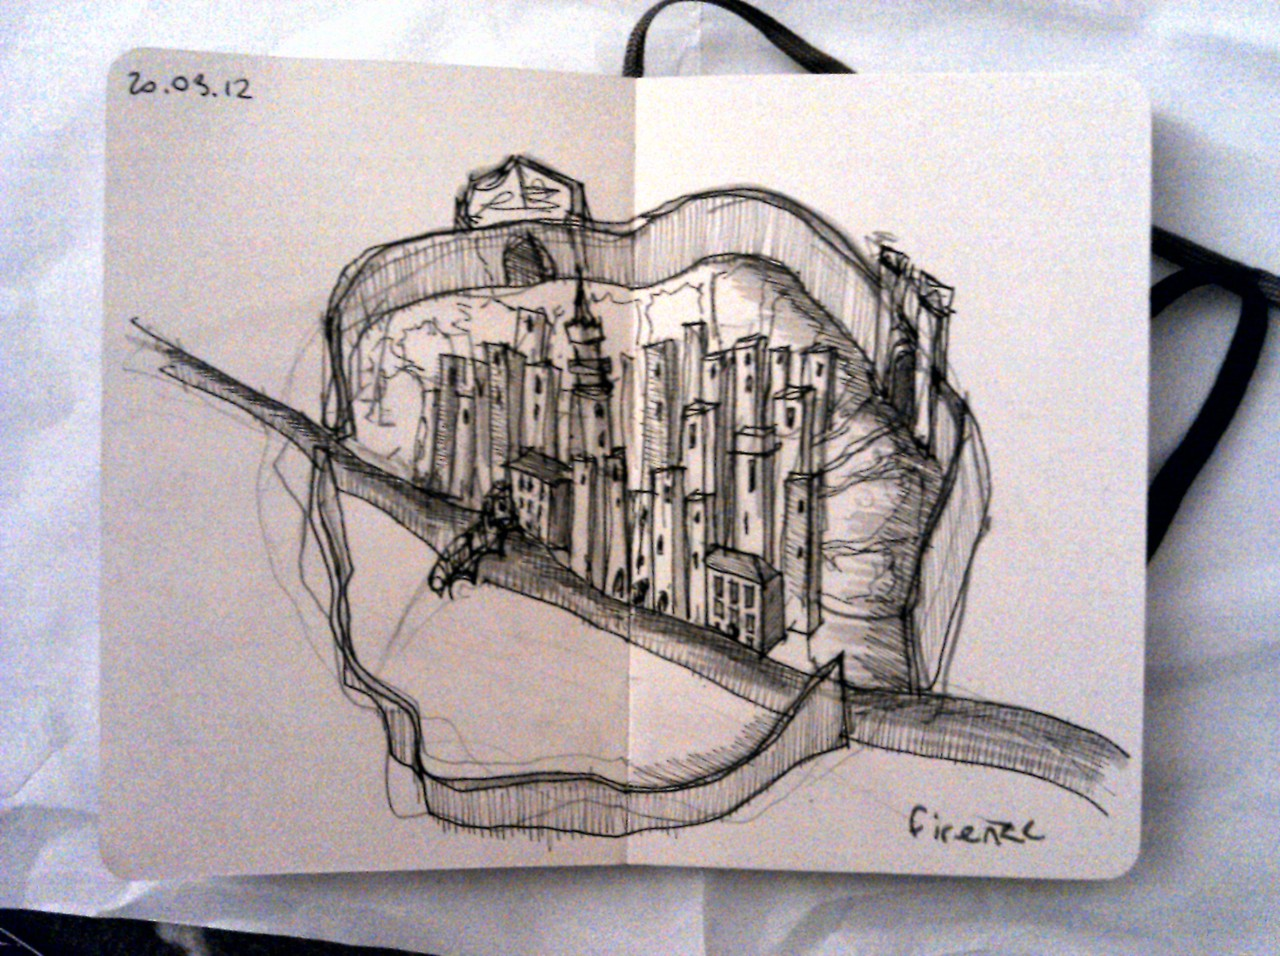 365 days later … day 49 … firenze (those towers again)